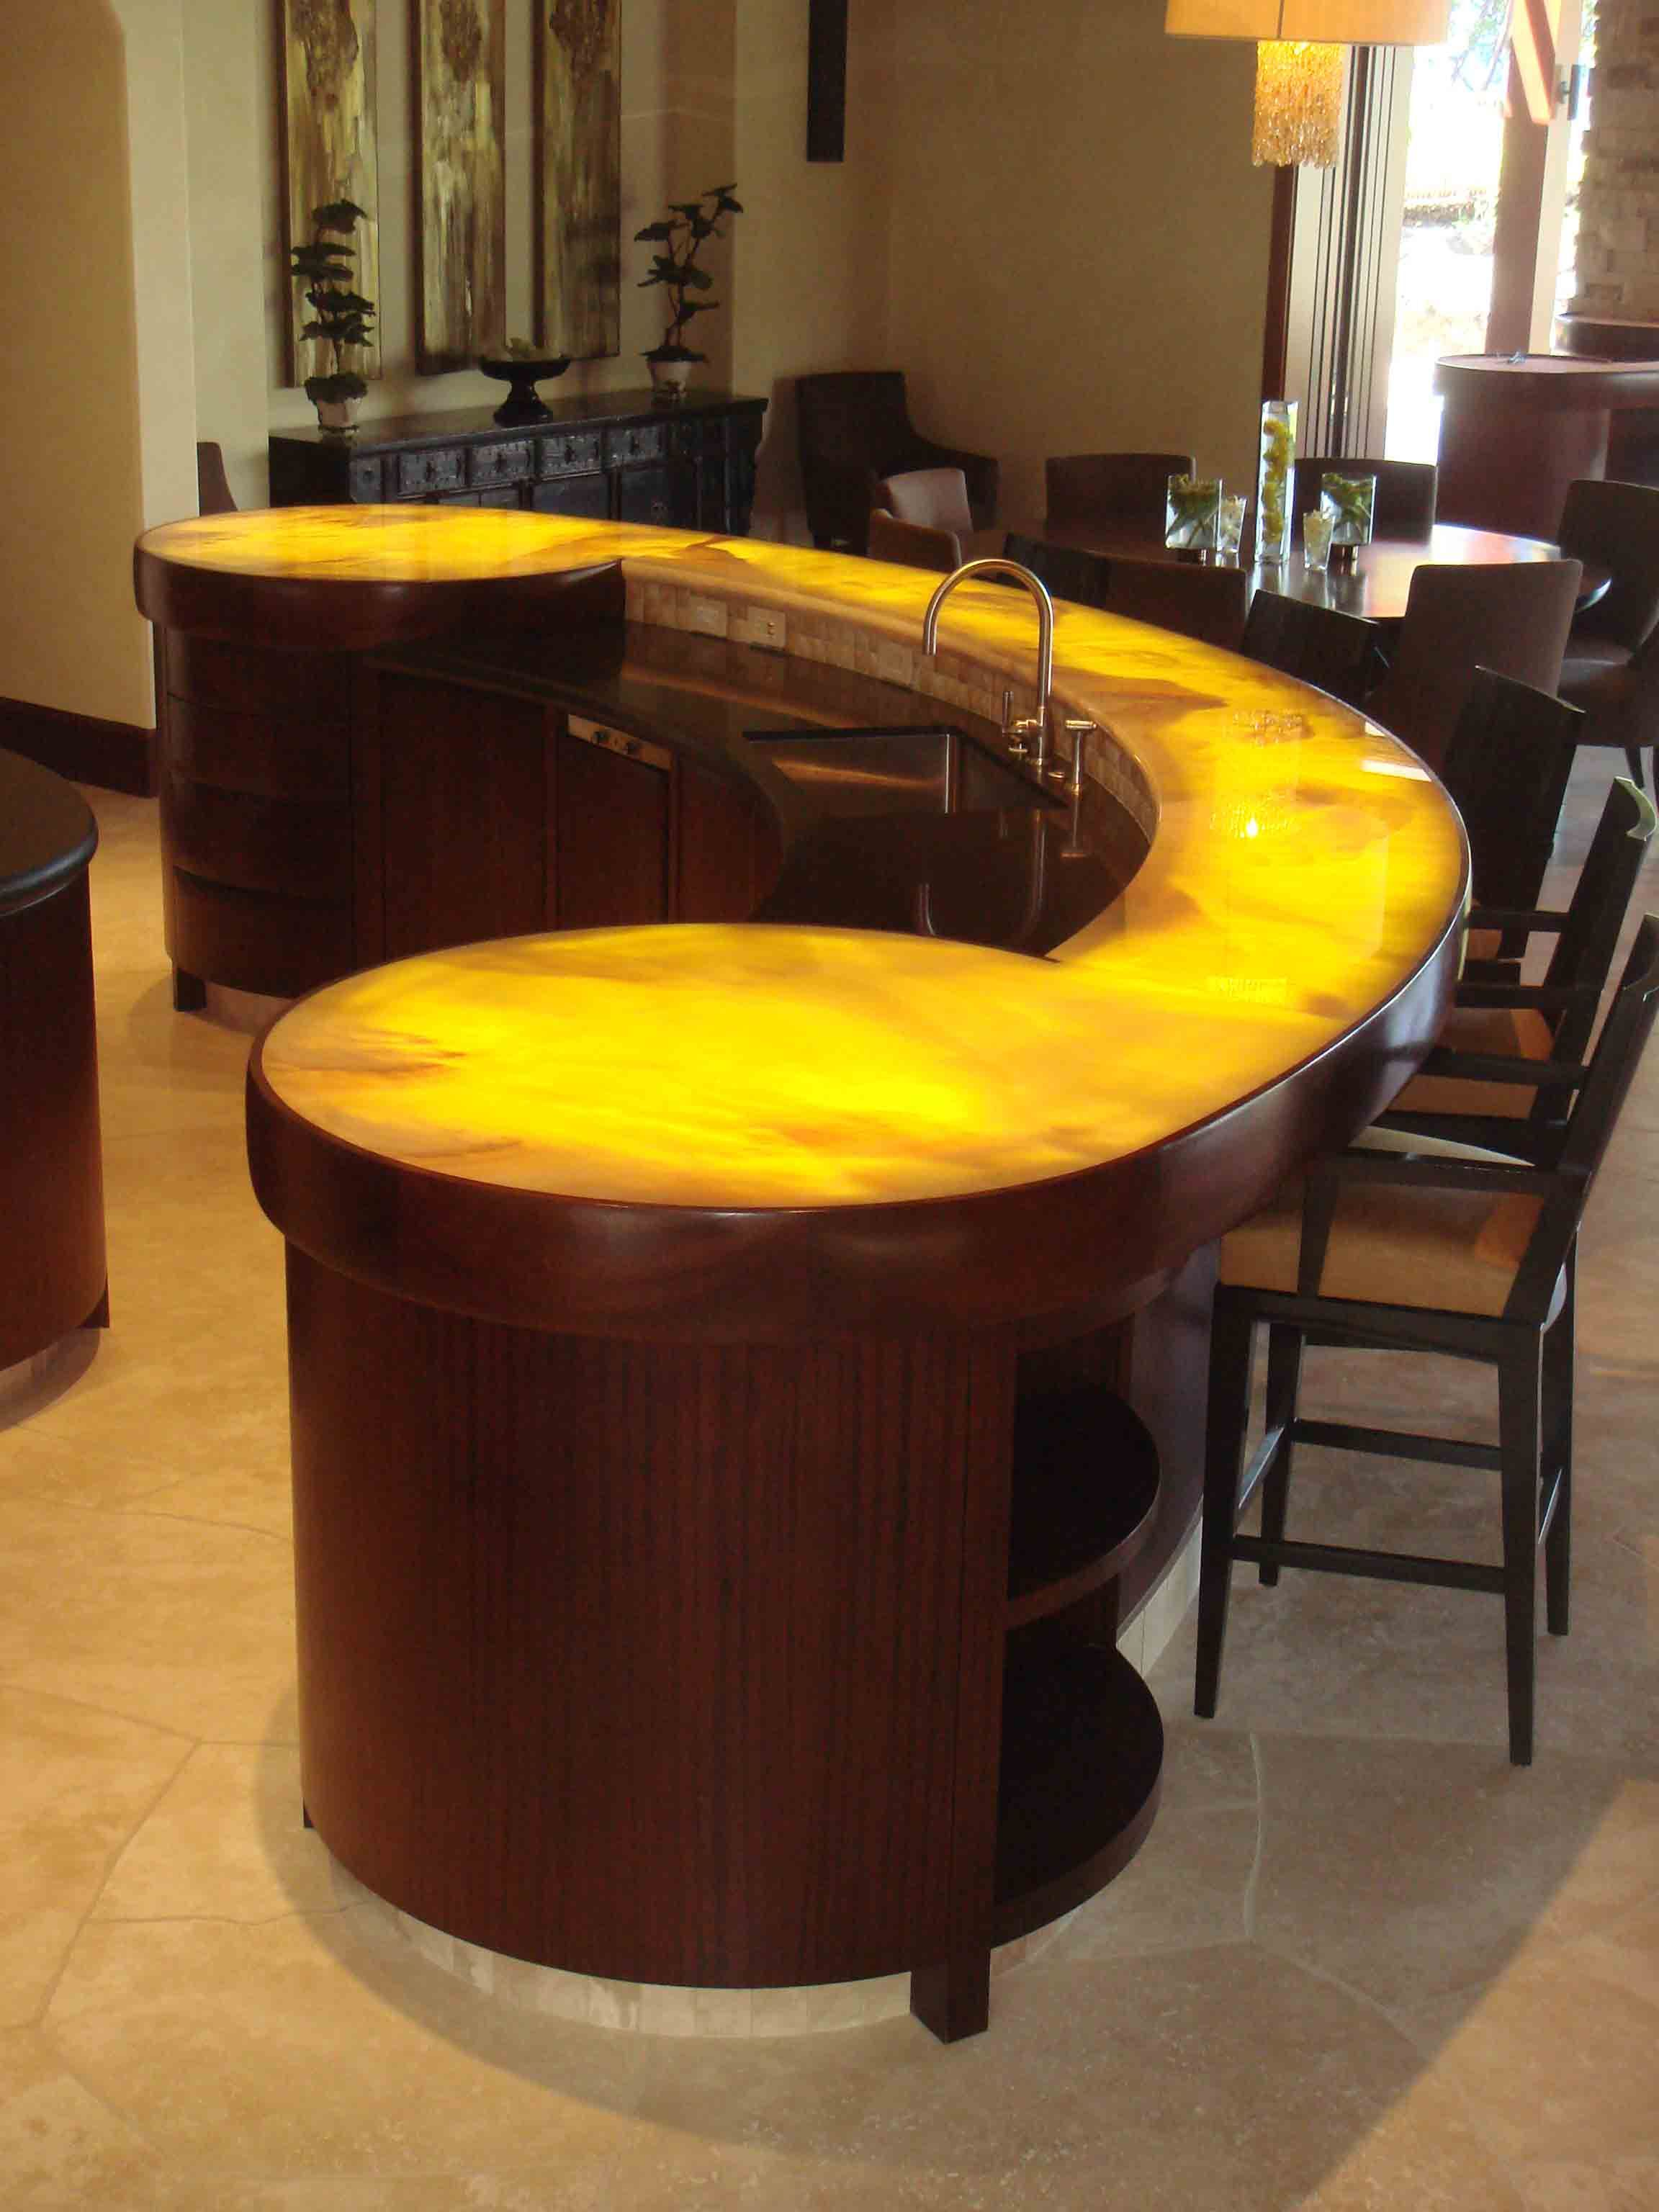 splendid kitchen furniture design ideas. of kitchen furniture half round table yellow color on and classic wooden chairs luxury decorations cheap countertop ideas small home design splendid